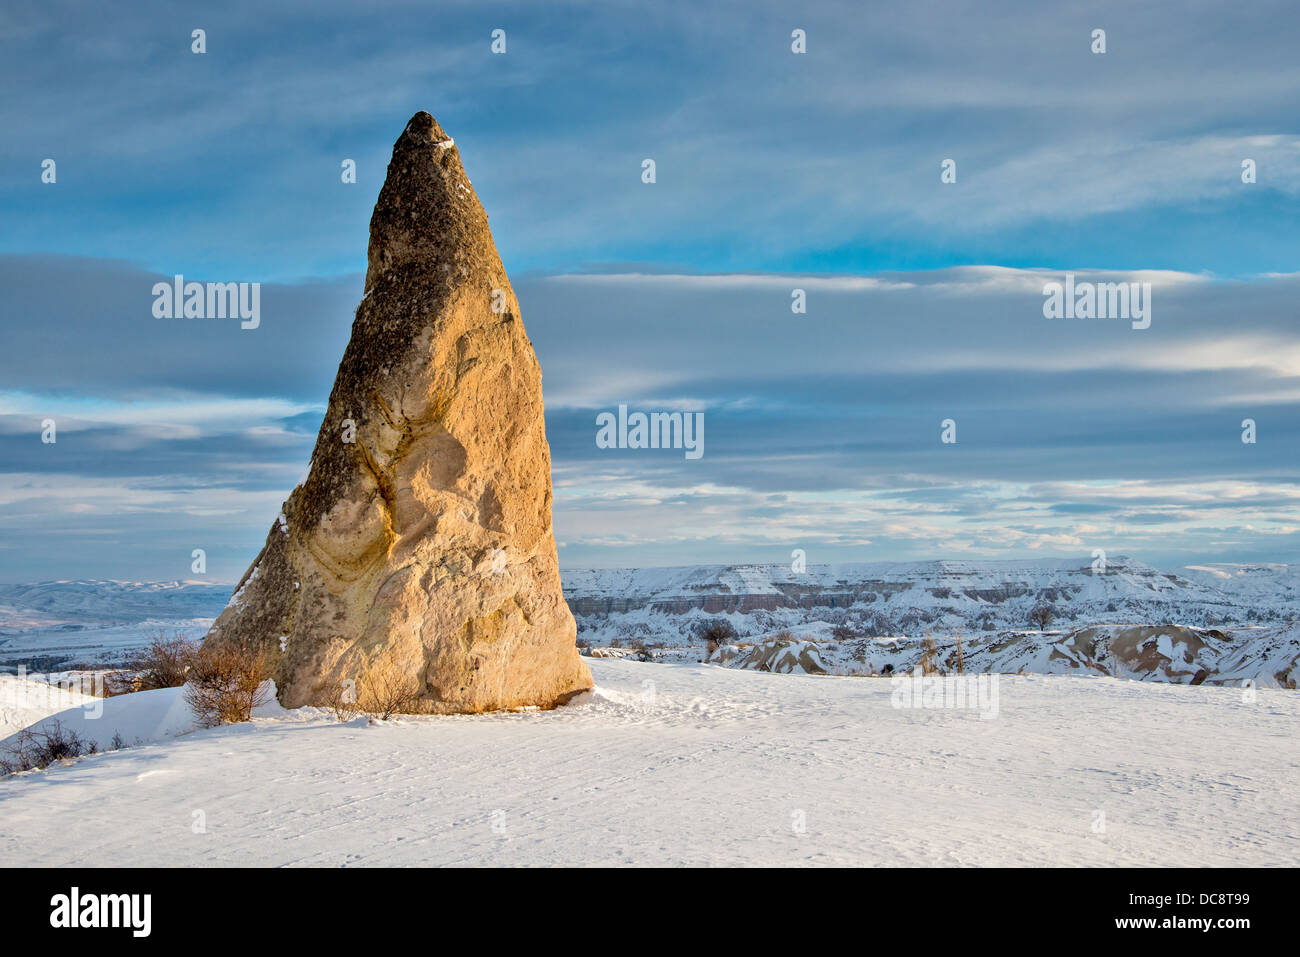 Pointy rock on top of a snowy mountain - Stock Image